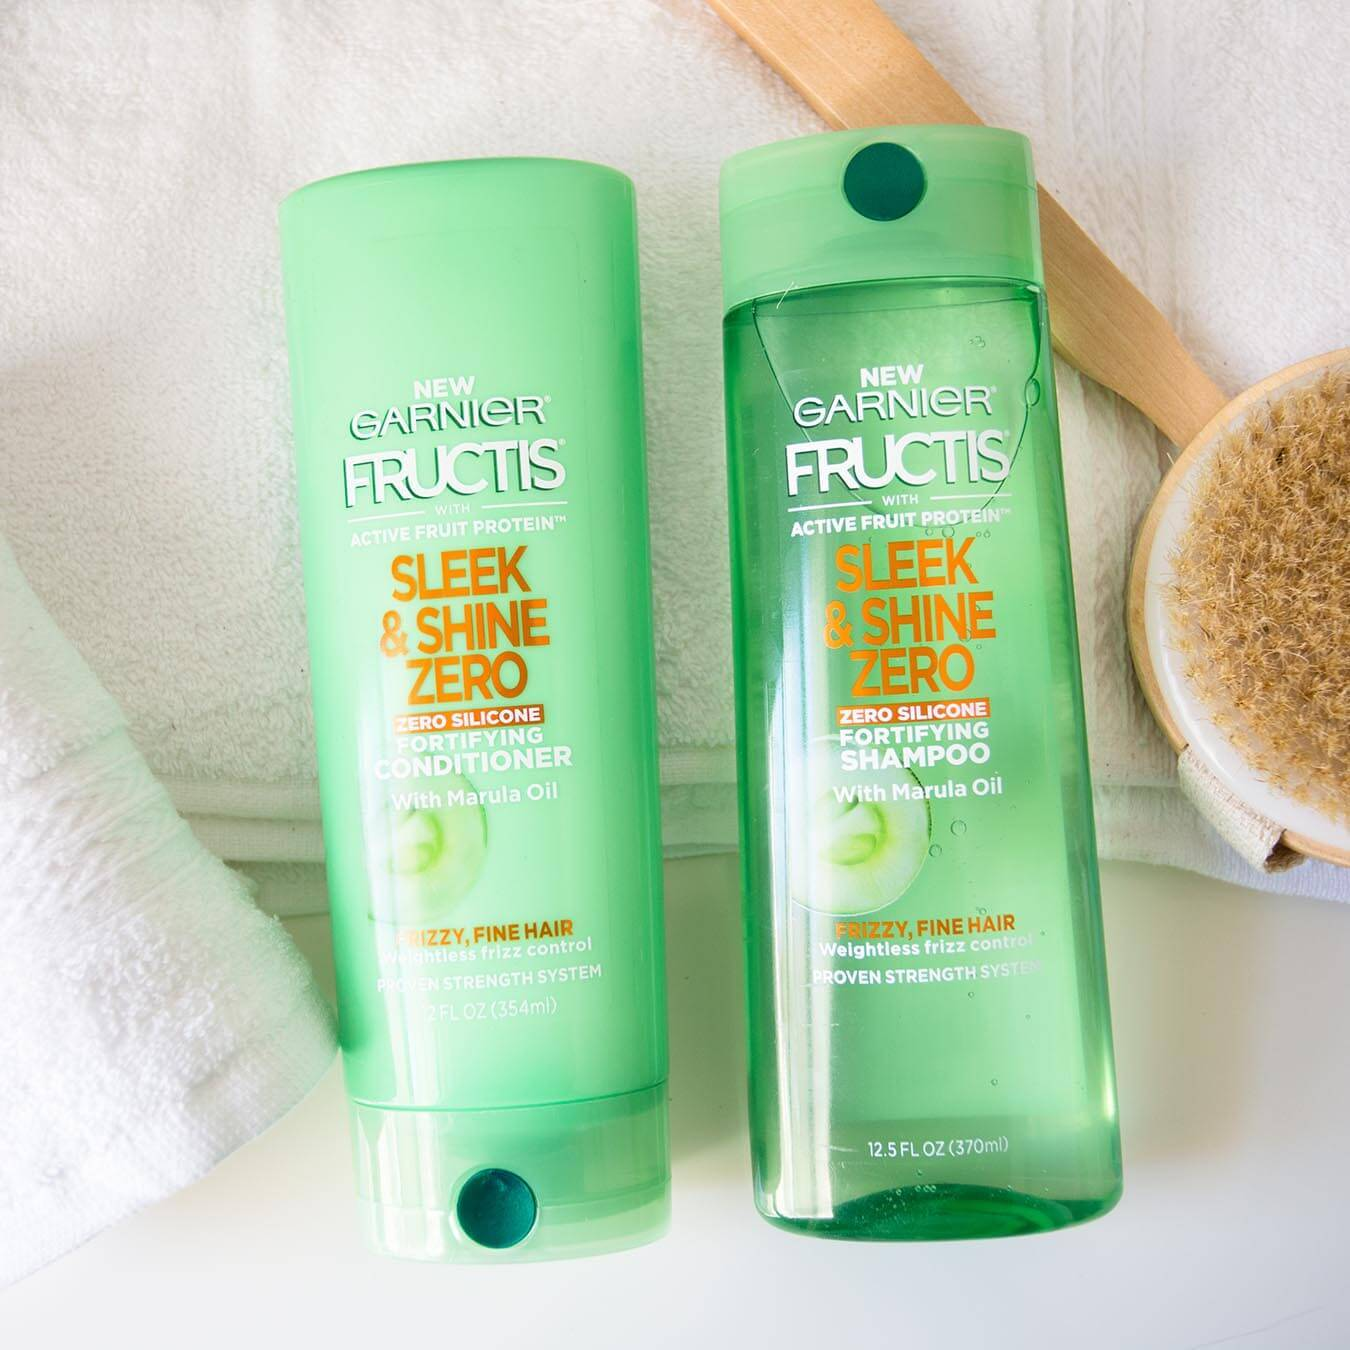 Garnier Fructis Sleek & Shine Zero Shampoo and Fructis Sleek & Shine Zero Conditioner on a white bath towel on a white background next to a white hand towel and a wooden bath scrub brush.